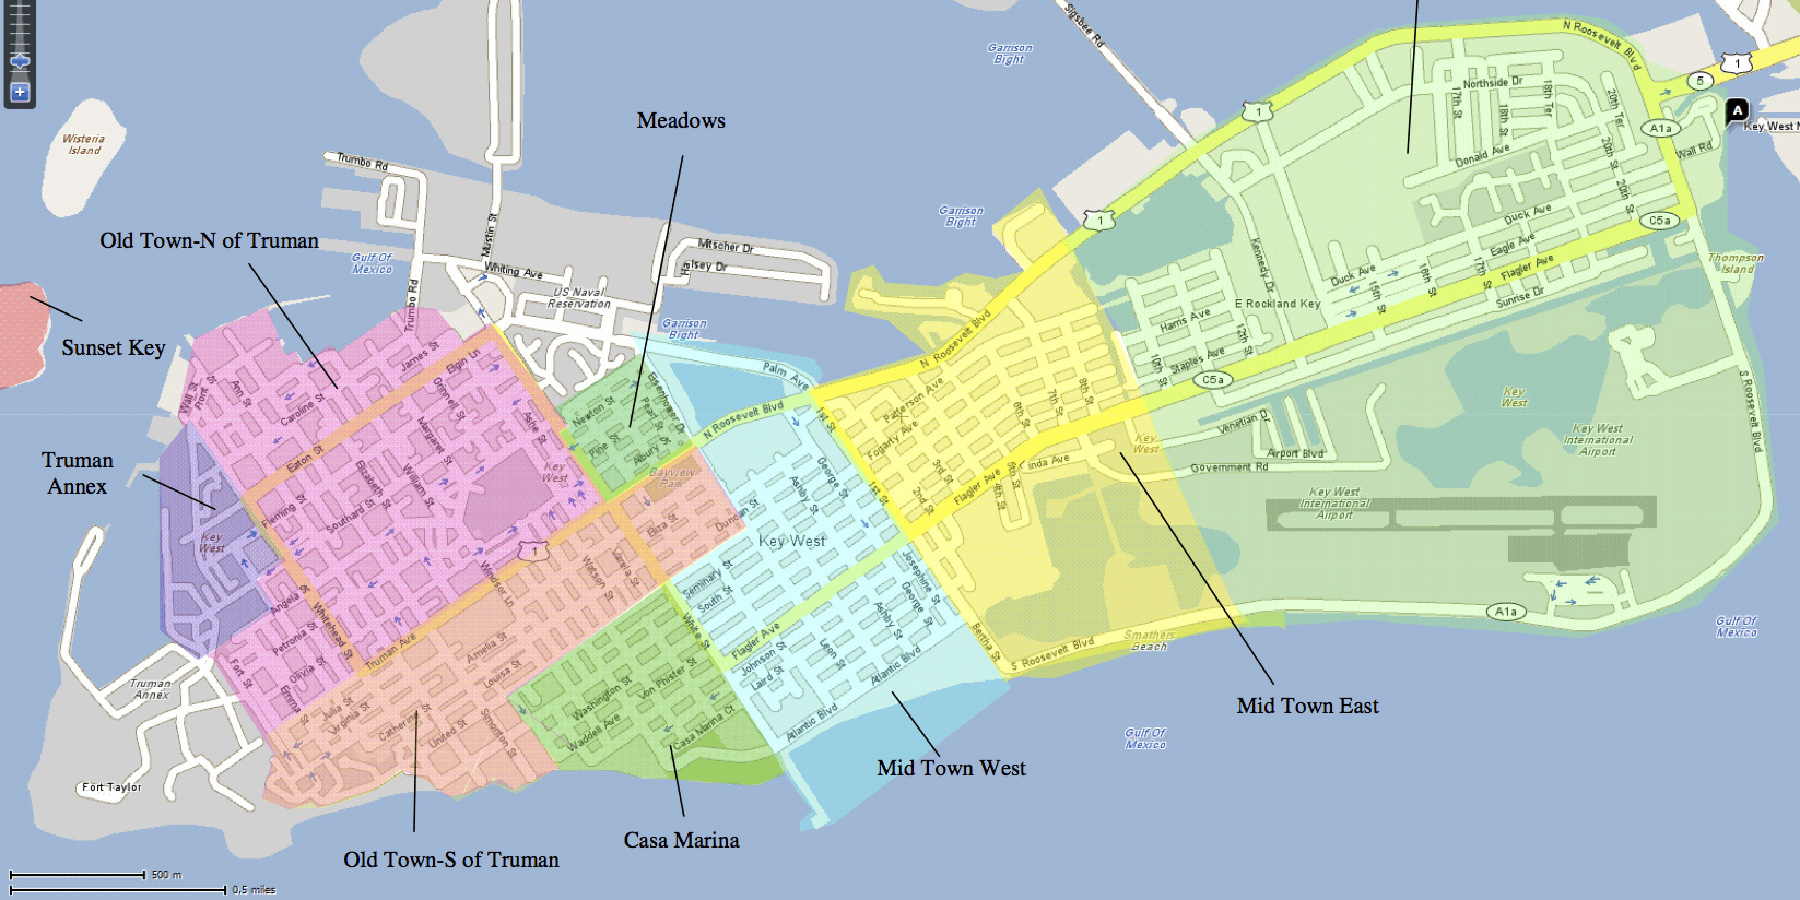 The Neighborhoods Of Key West | Historic Key West Vacation Rentals on michigan victorian house plans, key west patio home plans, key west florida home plans, san francisco victorian house plans, key west bungalow plans,